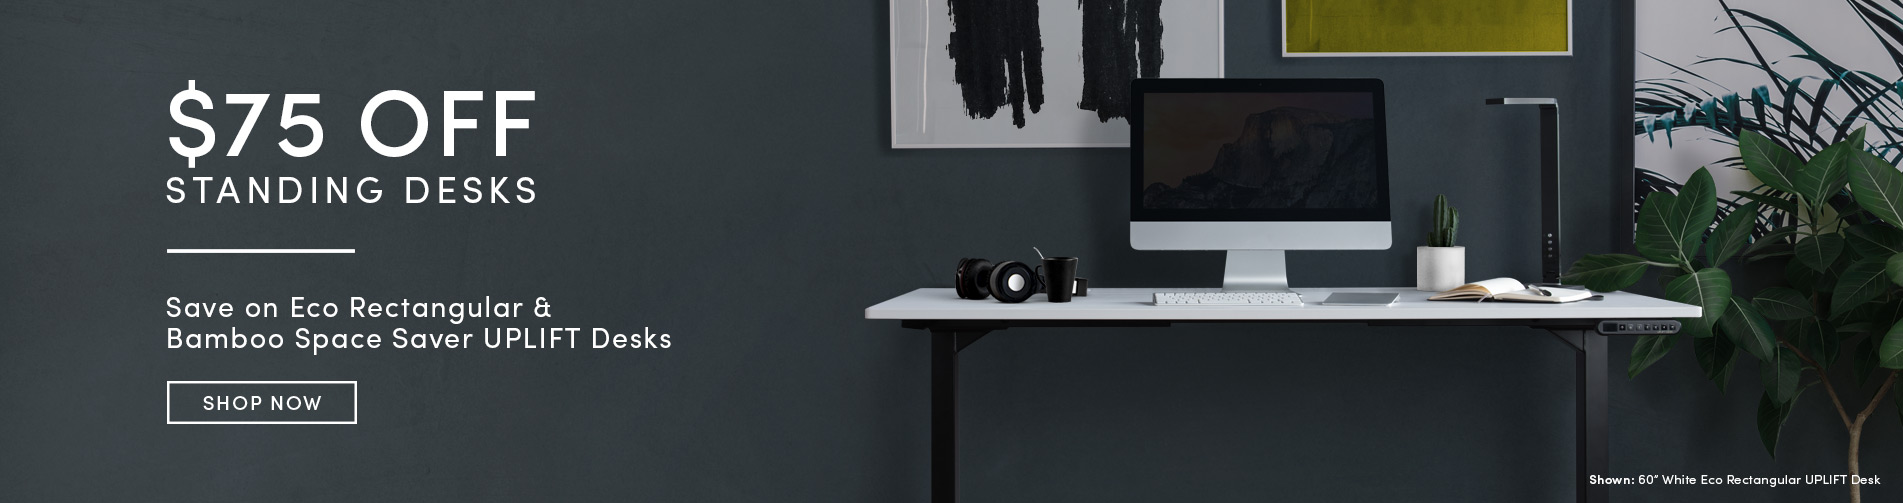 Save $75 on Select Standing Desks